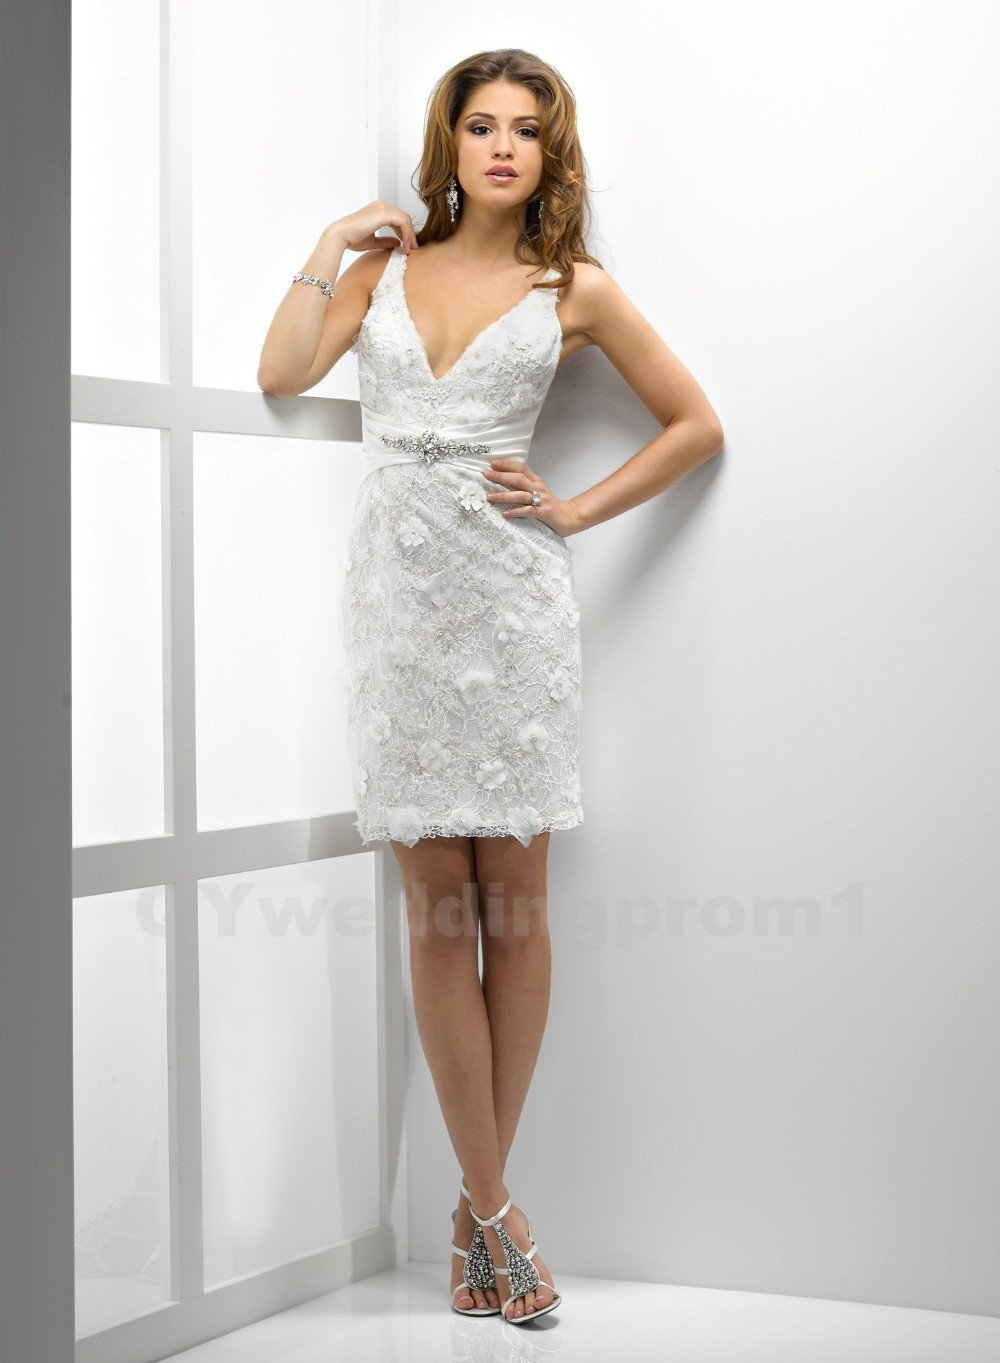 Lace A-Line Wedding Dress Fashionable Beaded Spaghetti Straps White Cheap Short Wedding Dress